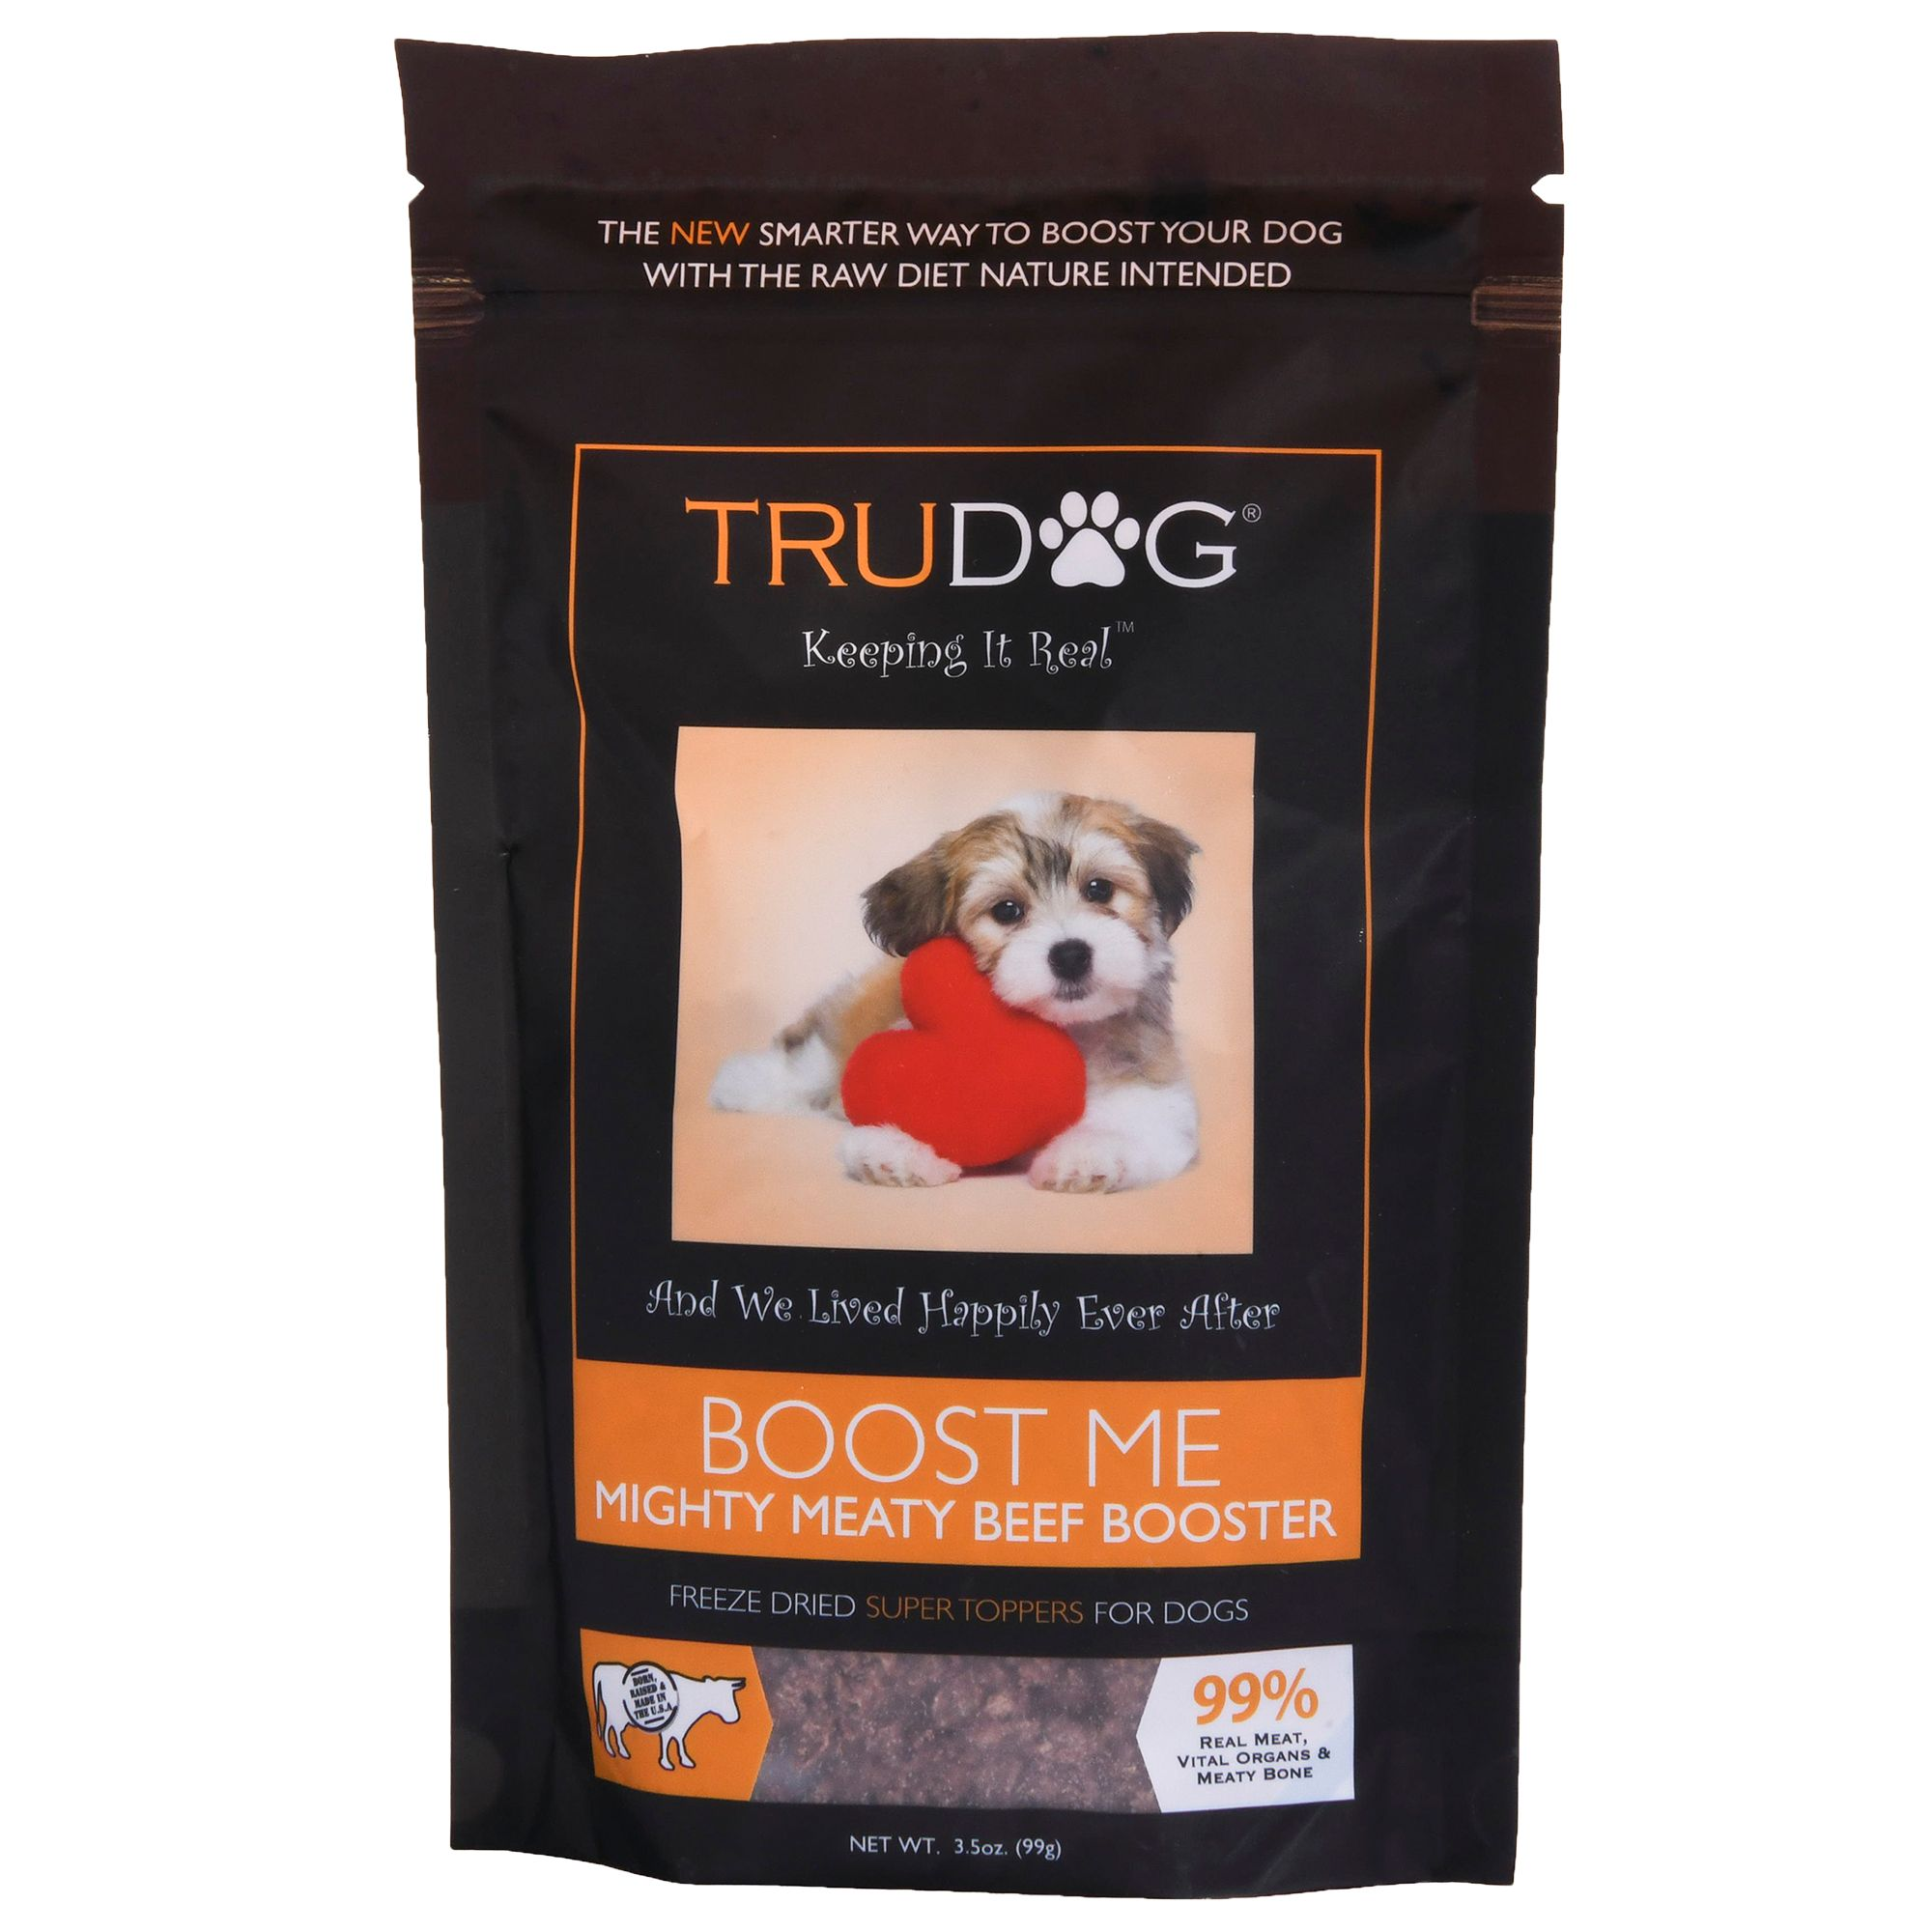 Trudog Boost Me Dog Food Enhancer Freeze Dried Raw Grain Free Natural Beef Size 3.5 Oz